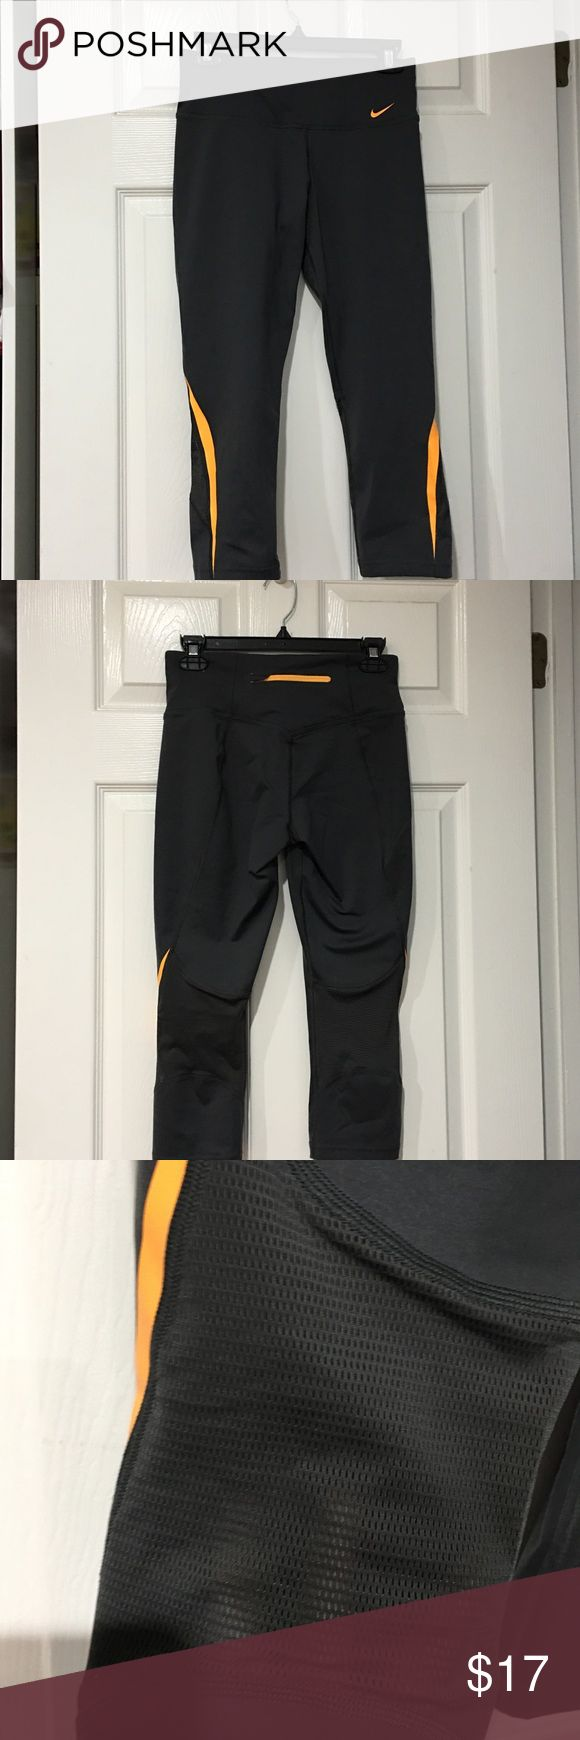 Nike Dri-Fit Mid-Calf Yoga Pants Dark  Grey colored Nike yoga pants with orange accents on the bottom of pants. Has mesh detail behind the knee. Excellent condition, worn a few times. Nike Pants Leggings